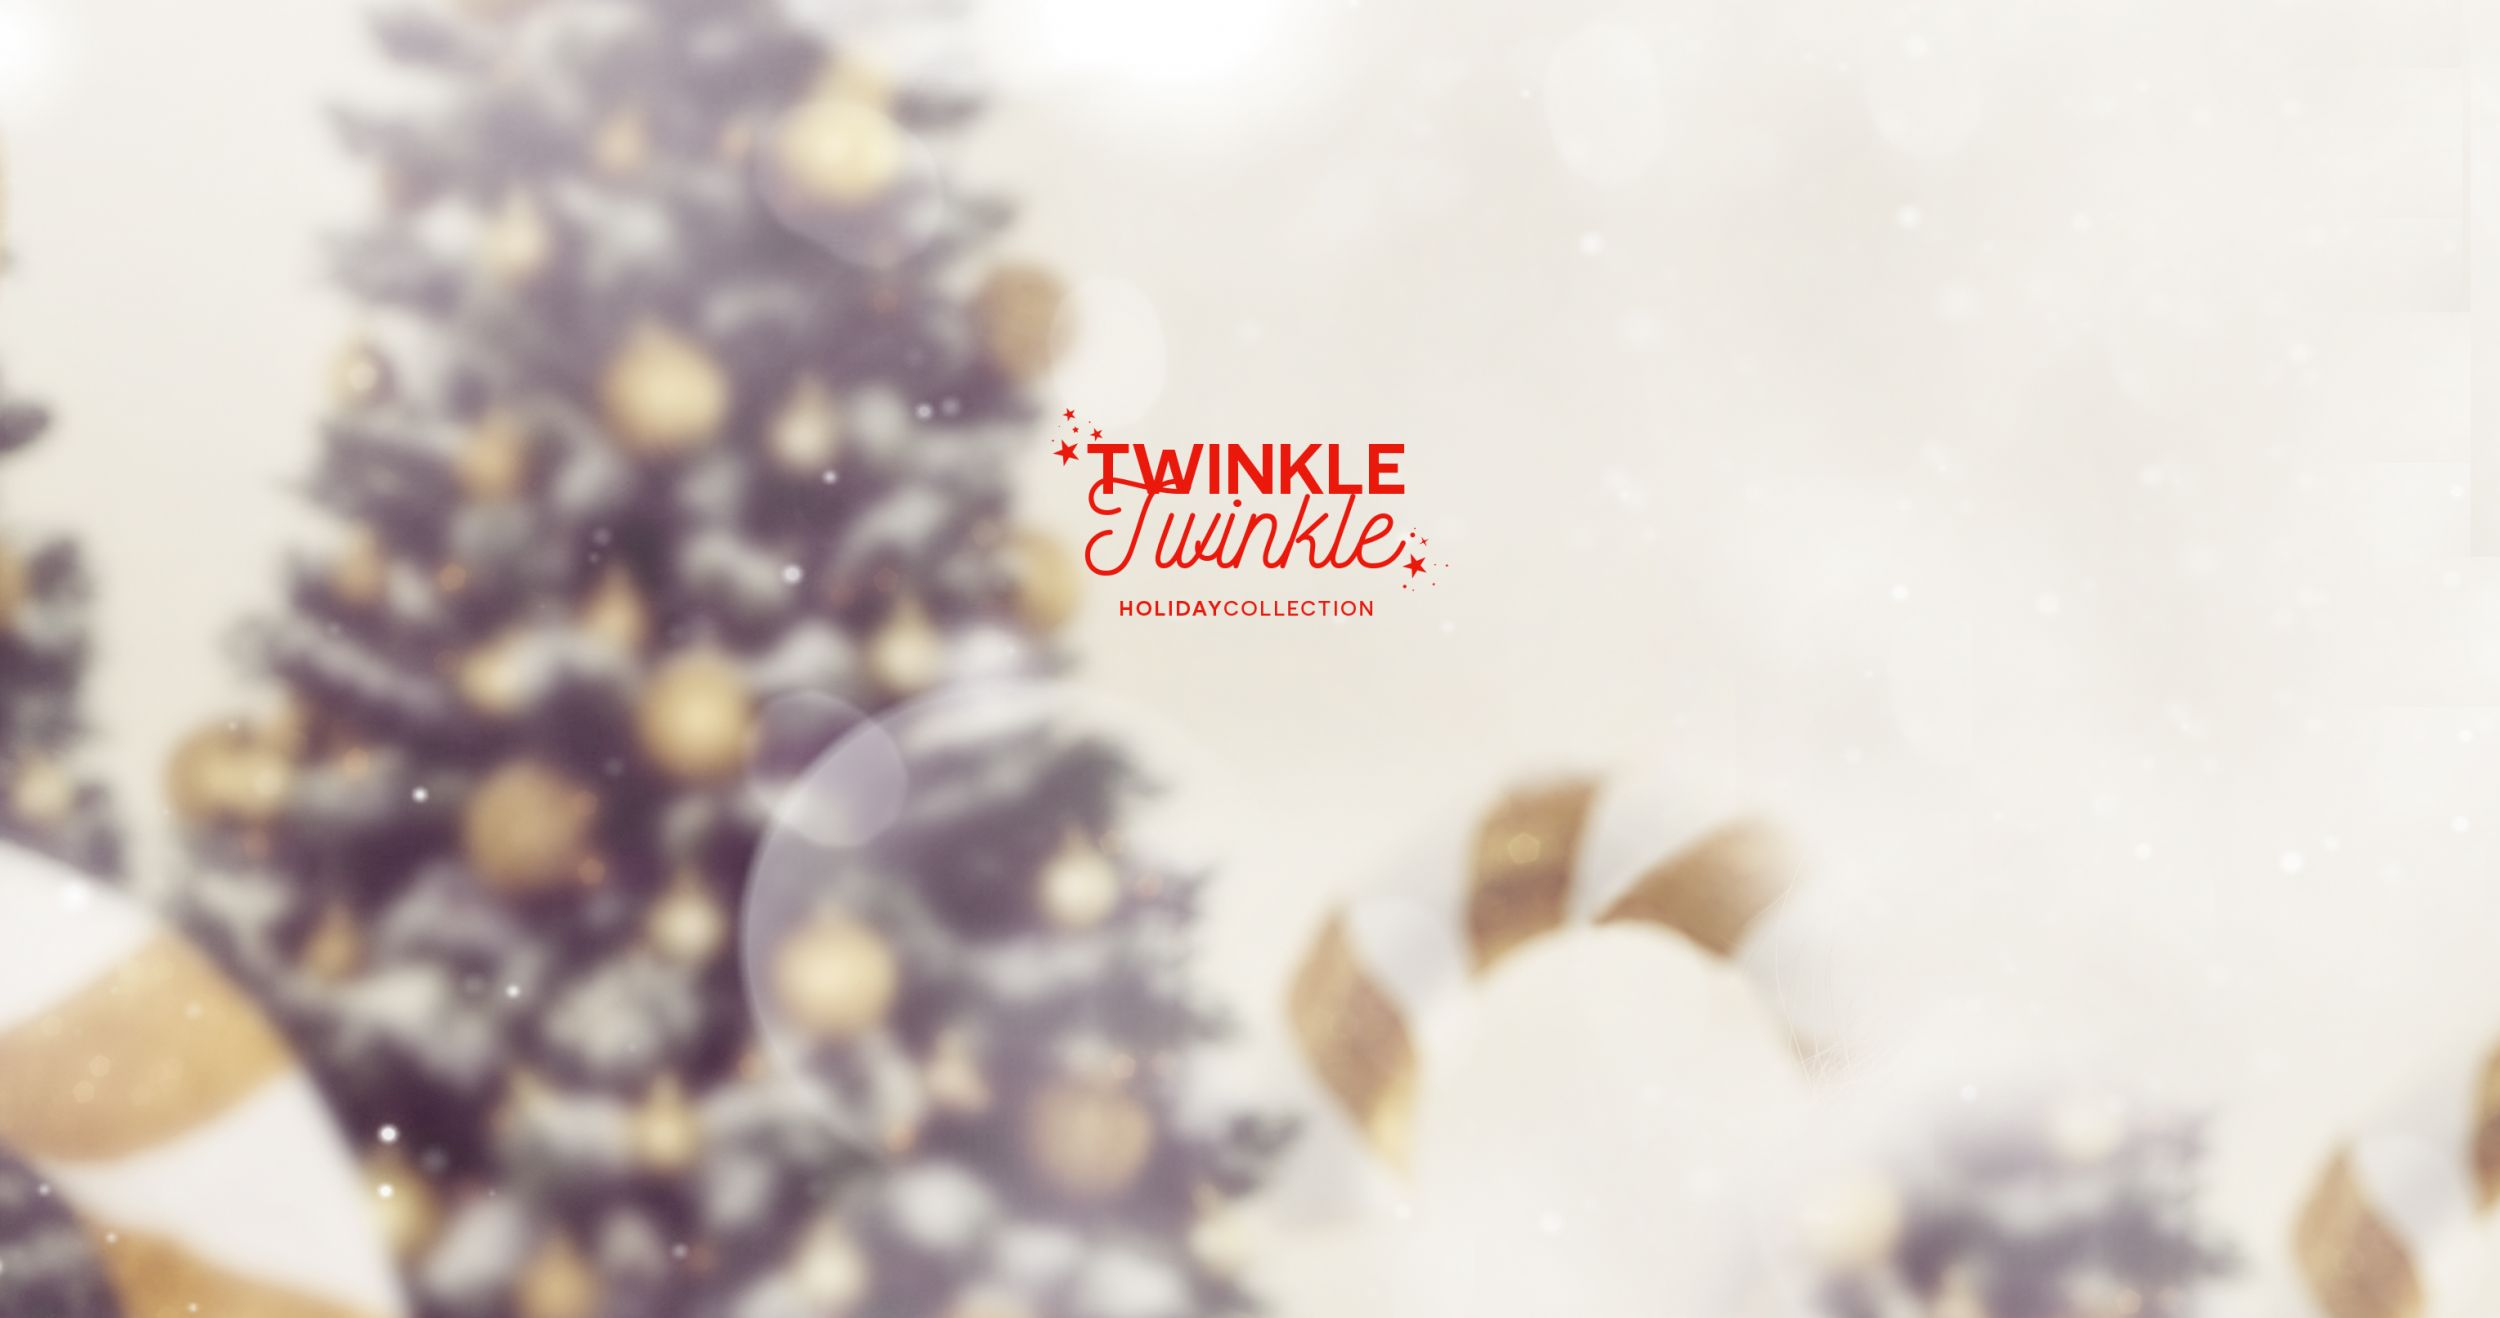 TWINKLE TWINKLE video campagna